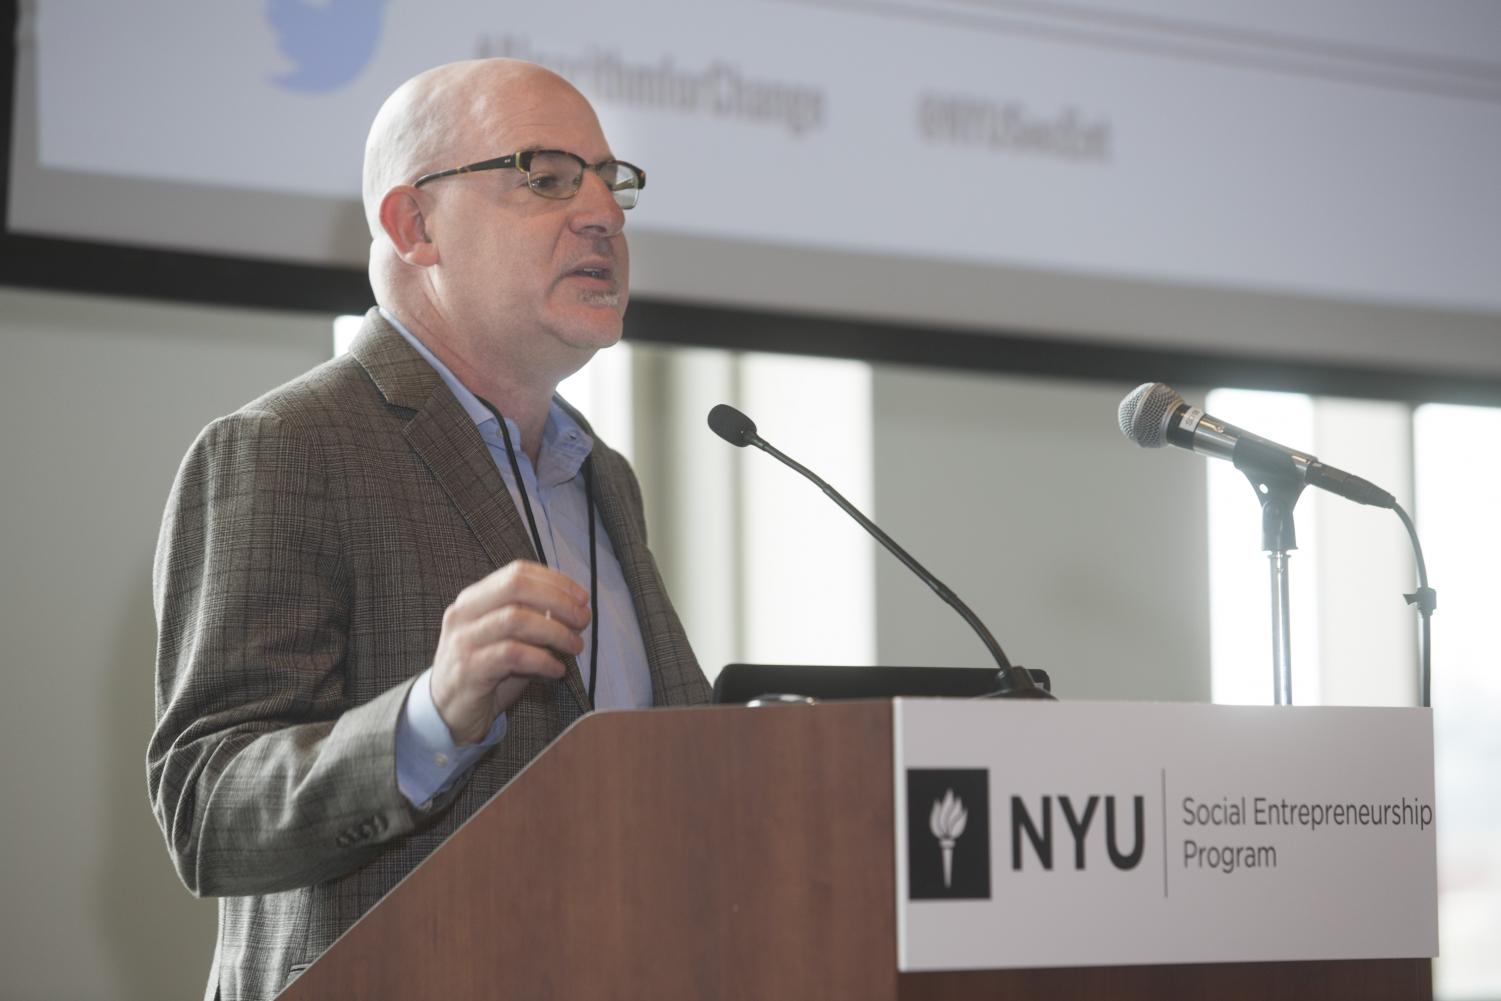 Gabriel Brodbar, the director of the NYU Social Entrepreneurship Program, speaks at the event.